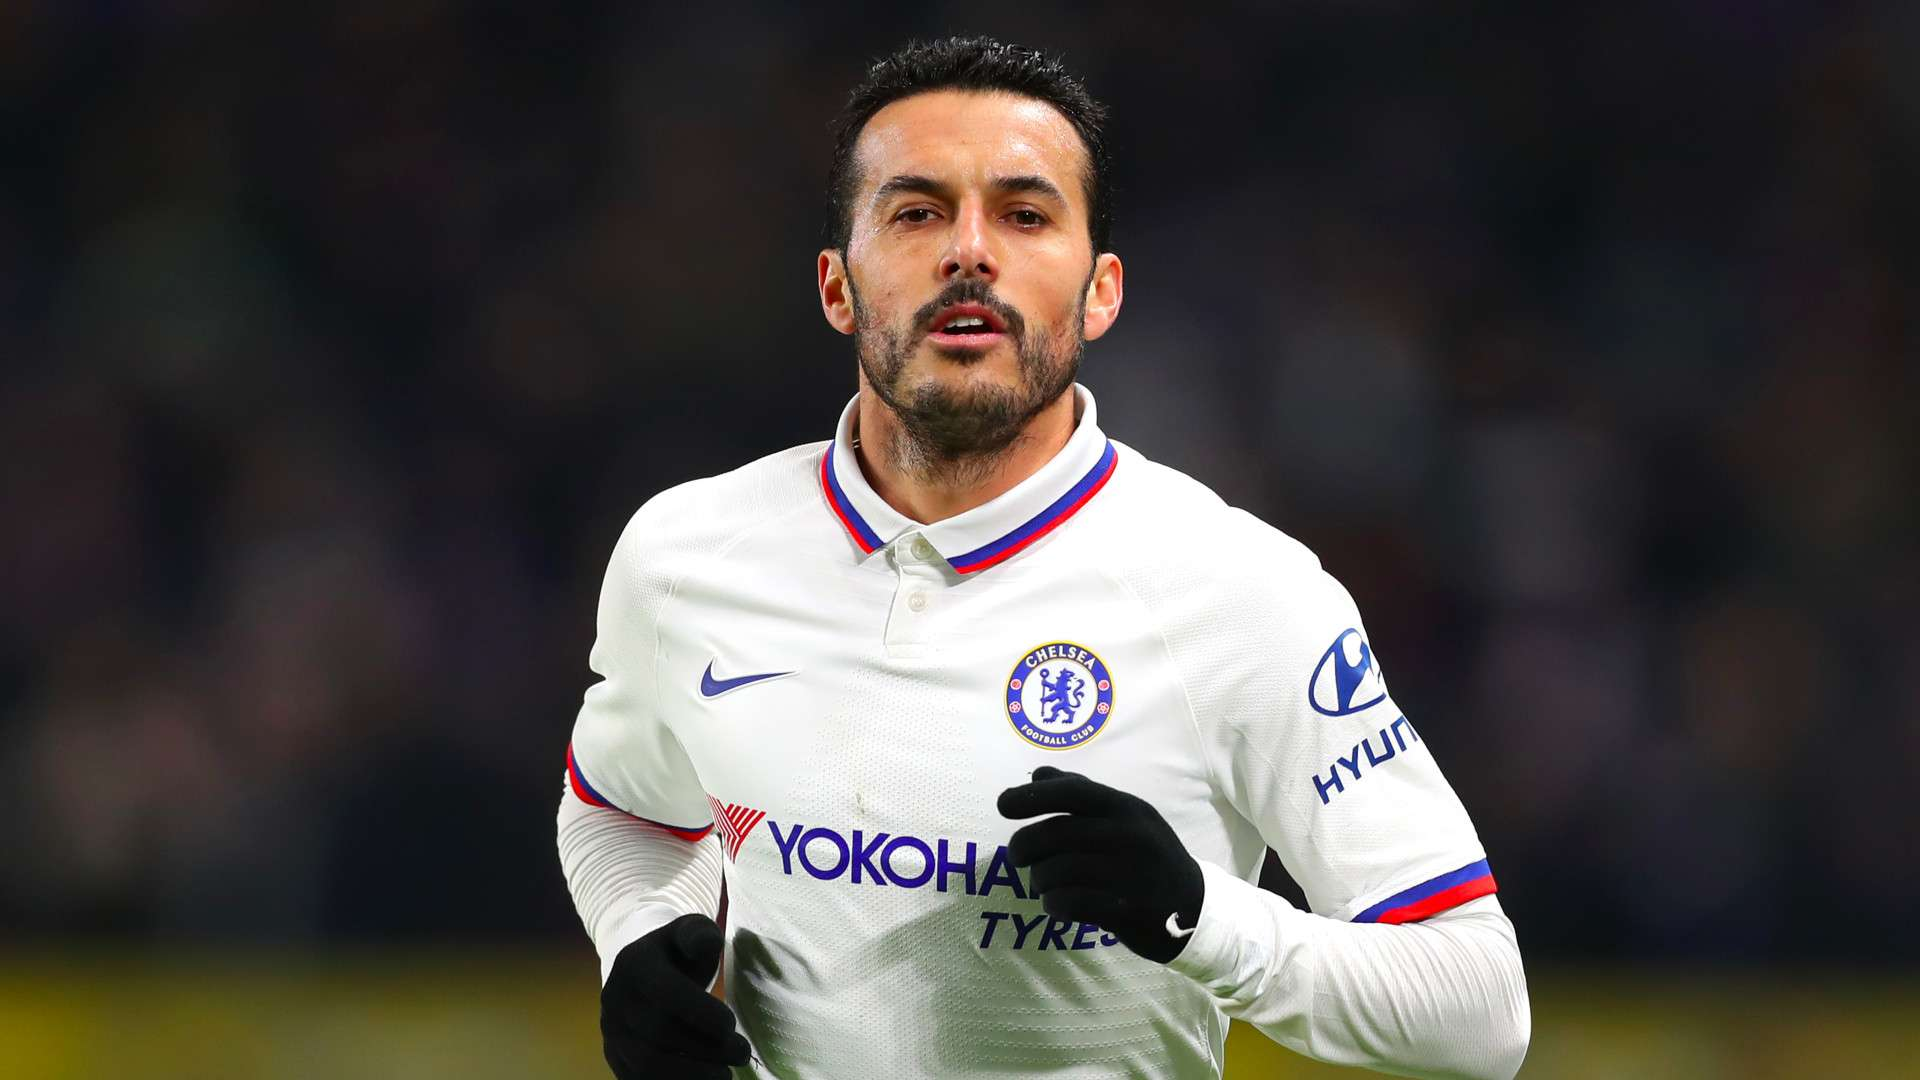 chelsea's-pedro-wanted-by-ambitious-vissel-kobe-amid-interest-from-nycfc-&-inter-miami